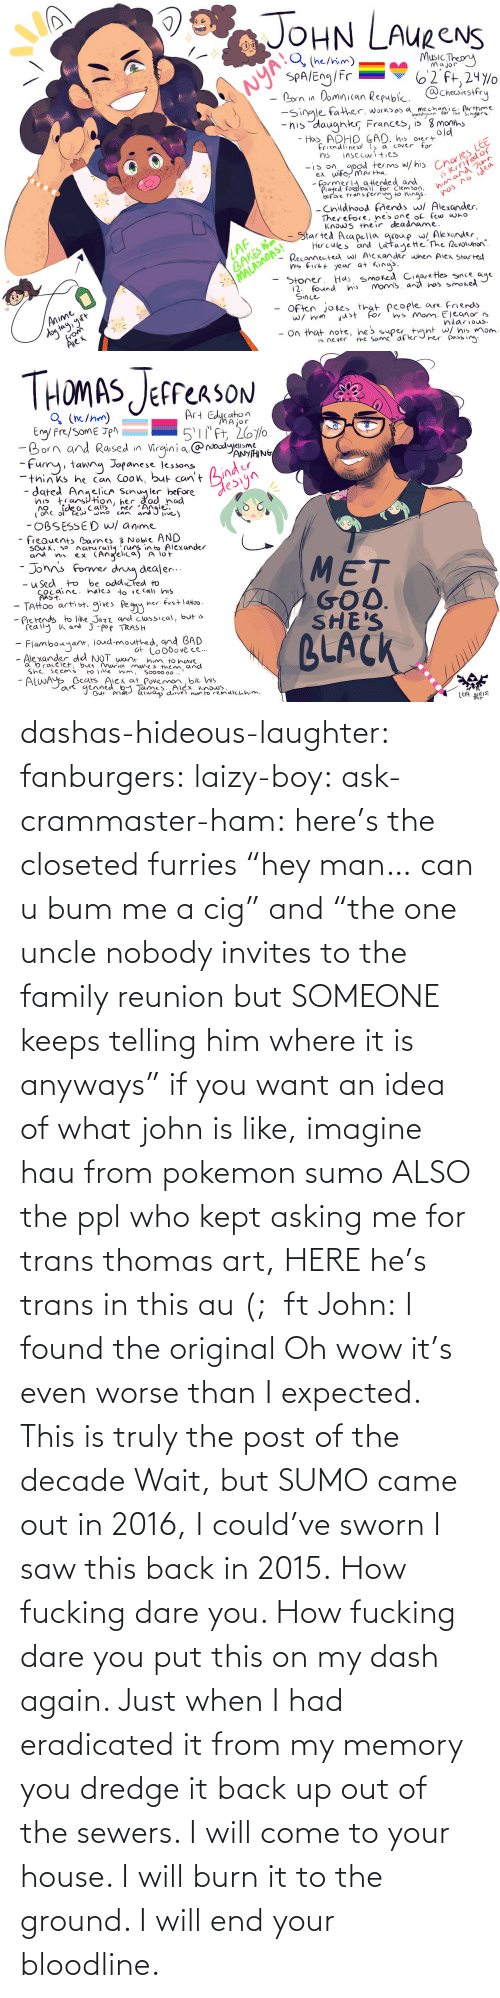 "dare: dashas-hideous-laughter:  fanburgers:   laizy-boy:   ask-crammaster-ham:   here's the closeted furries ""hey man… can u bum me a cig"" and ""the one uncle nobody invites to the family reunion but SOMEONE keeps telling him where it is anyways""   if you want an idea of what john is like, imagine hau from pokemon sumo ALSO the ppl who kept asking me for trans thomas art, HERE he's trans in this au (;  ft John:    I found the original     Oh wow it's even worse than I expected. This is truly the post of the decade    Wait, but SUMO came out in 2016, I could've sworn I saw this back in 2015.    How fucking dare you. How fucking dare you put this on my dash again. Just when I had eradicated it from my memory you dredge it back up out of the sewers. I will come to your house. I will burn it to the ground. I will end your bloodline."